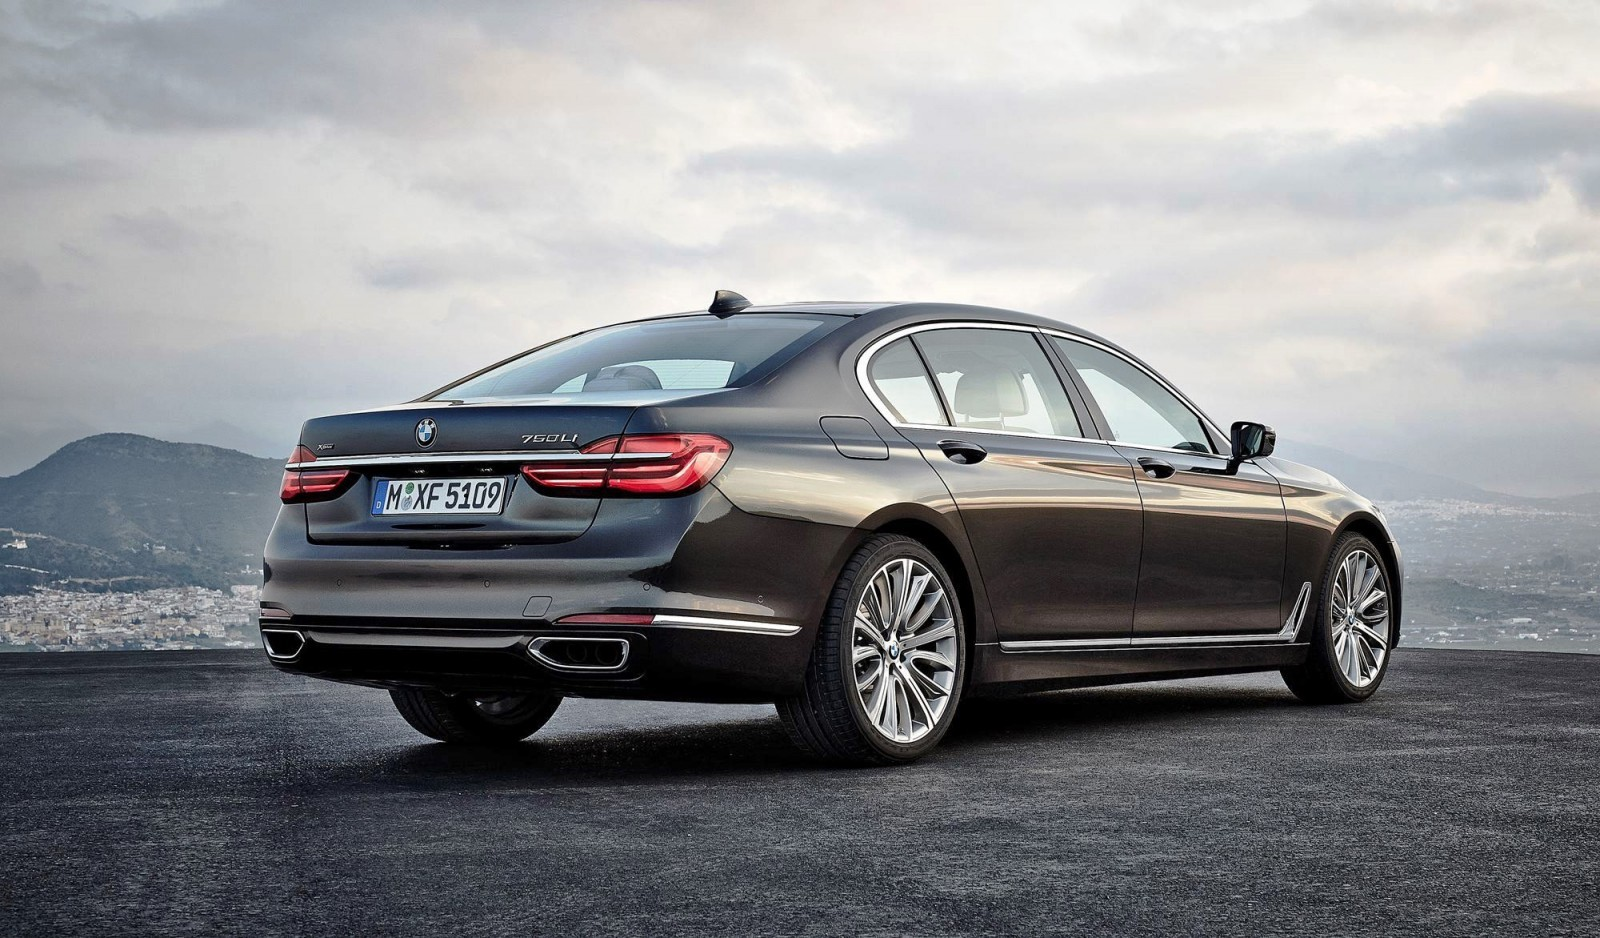 2016 BMW 750 Exterior Photos 16